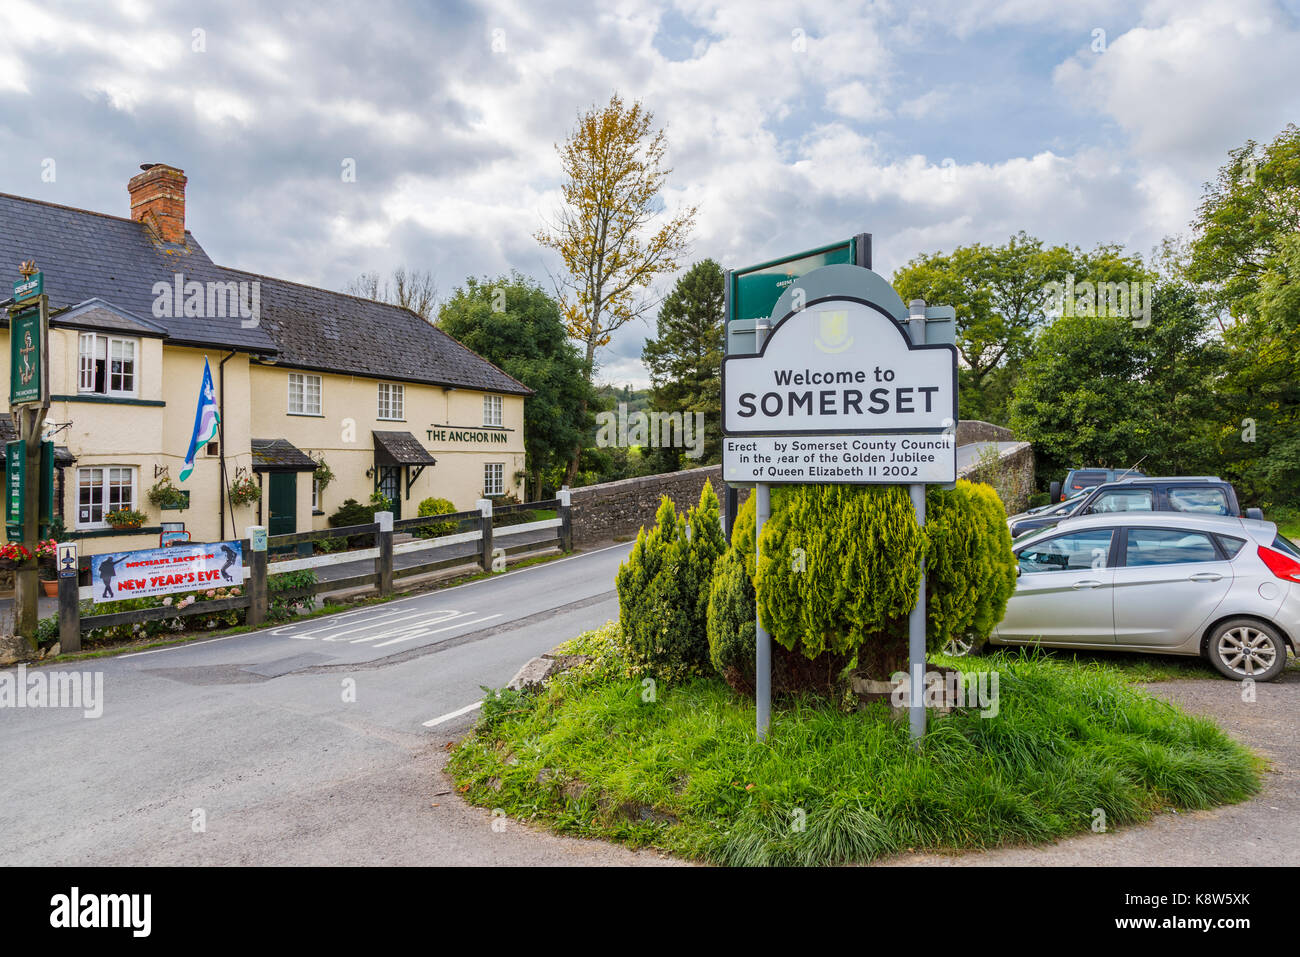 Welcome to Somerset street sign by the Anchor Inn in Exebridge, a village on the border of Devon and Somerset, England - Stock Image